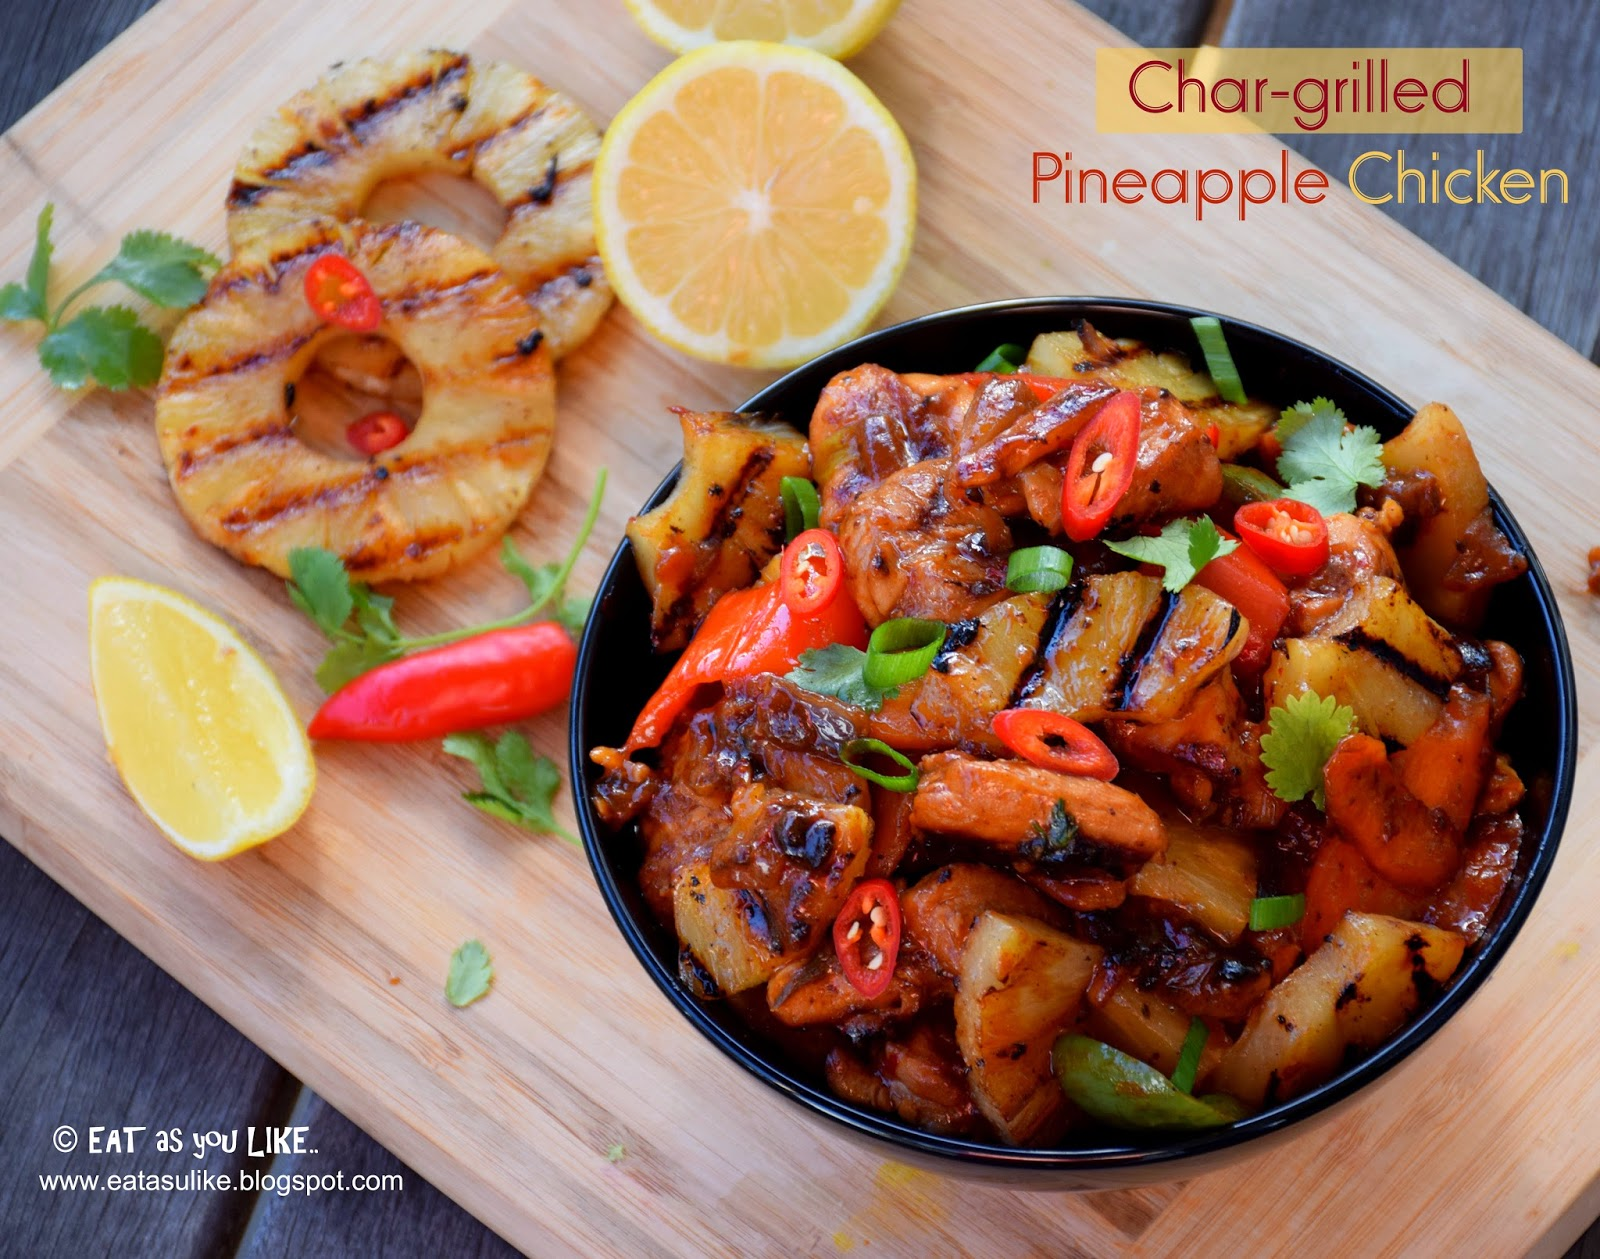 http://eatasulike.blogspot.com.au/2014/06/char-grilled-pineapple-chicken.html